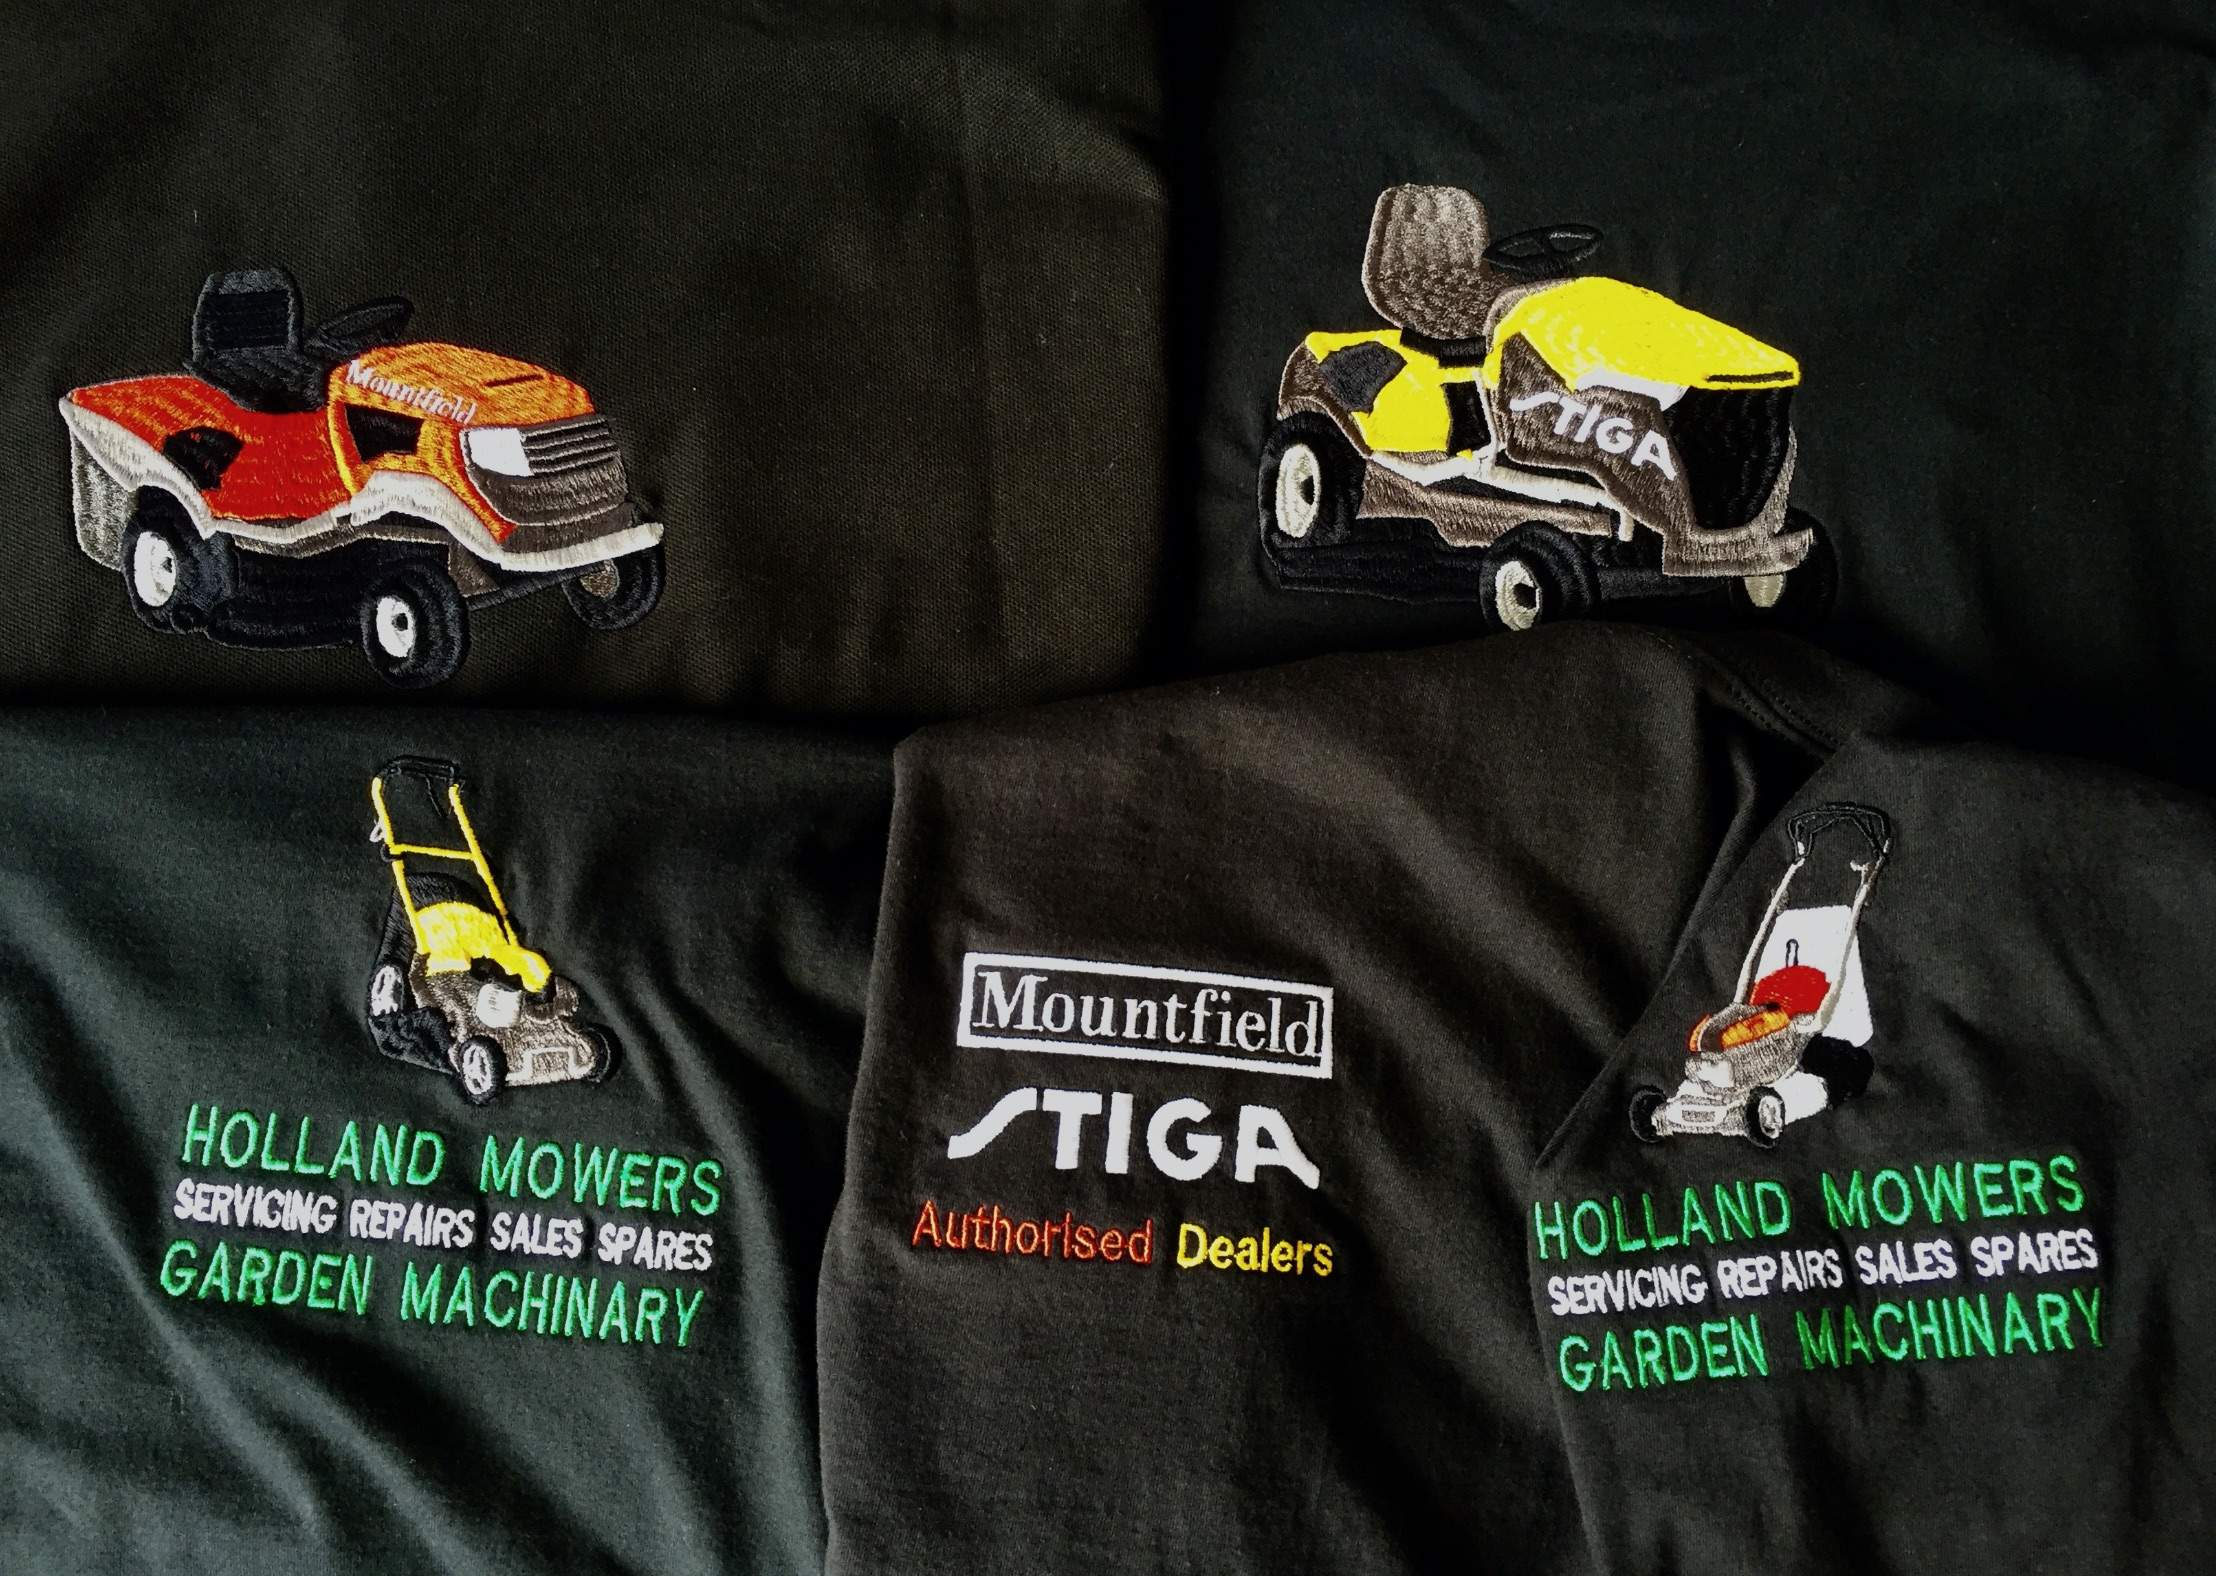 holland mowers lawnmower custom embroidery & digitizing service logo embroidered clothing uniform & workwear clacton essex uk